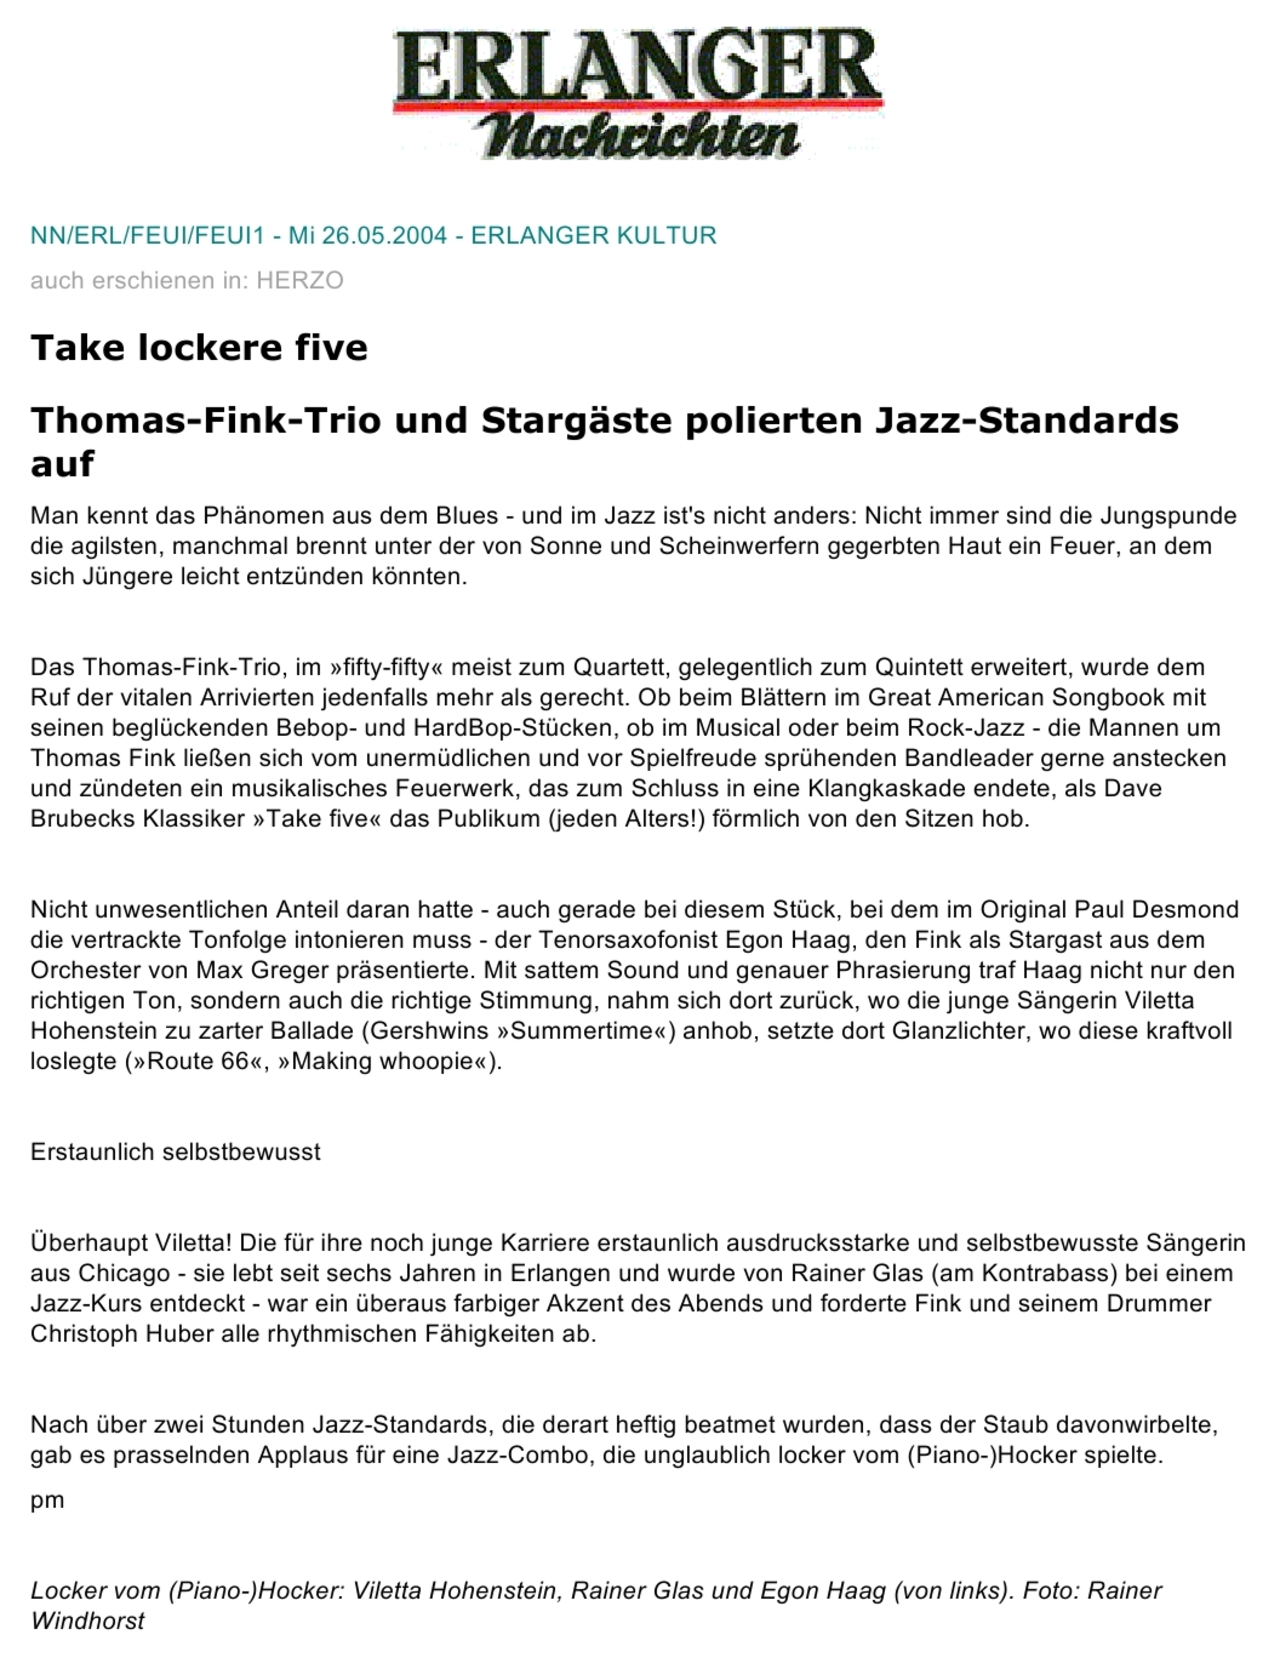 Erlanger Nachrichten newspaper reviews a jazz concert given by Thomas Fink, Rainer Glas and Egon Haag at the Fifty Fifty club in Erlangen in the year 2004